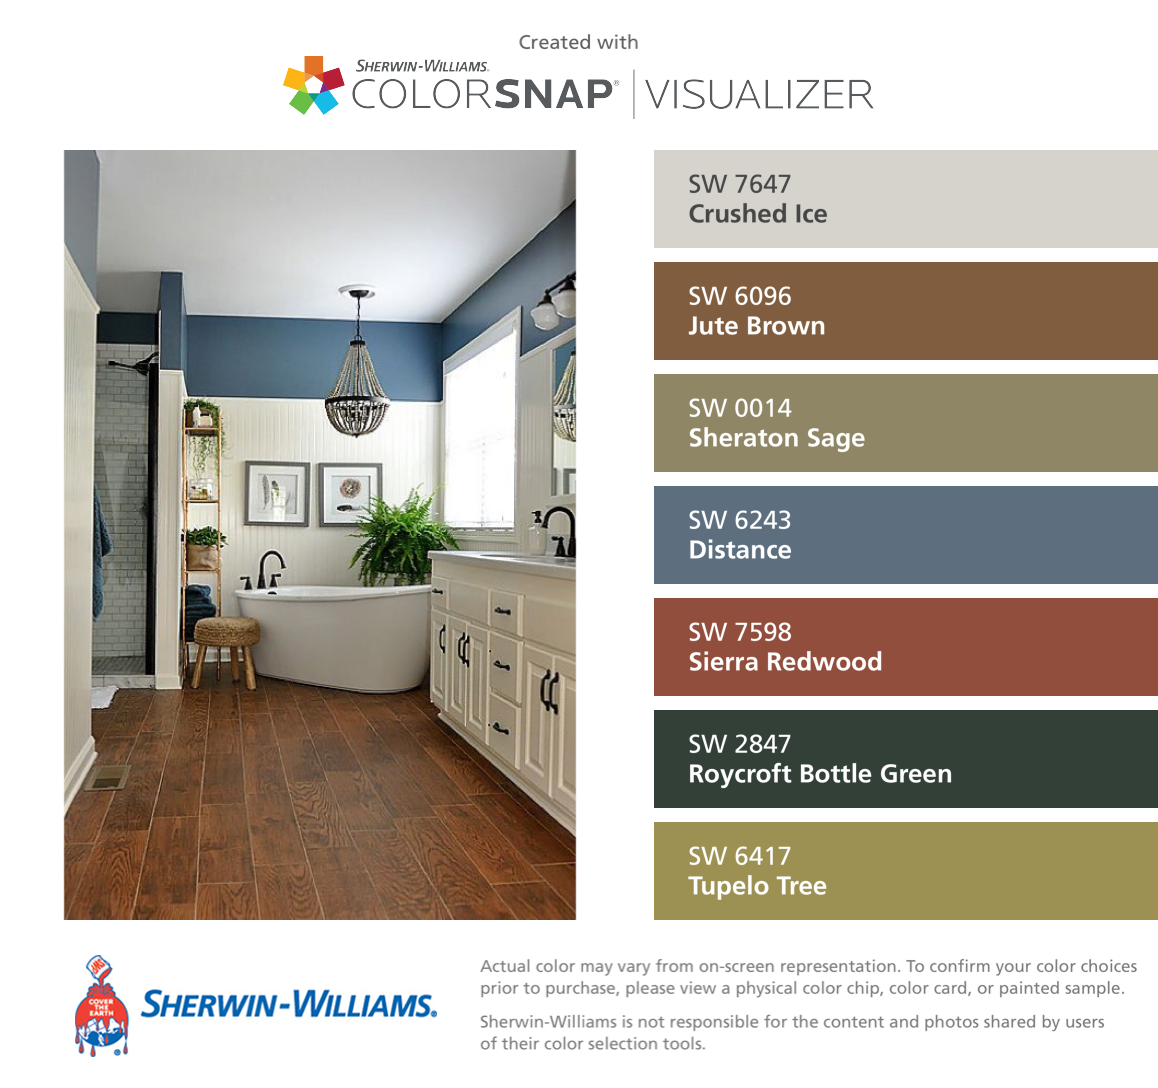 ellie gray paint sherwin williams image - Bing Images | For the ...